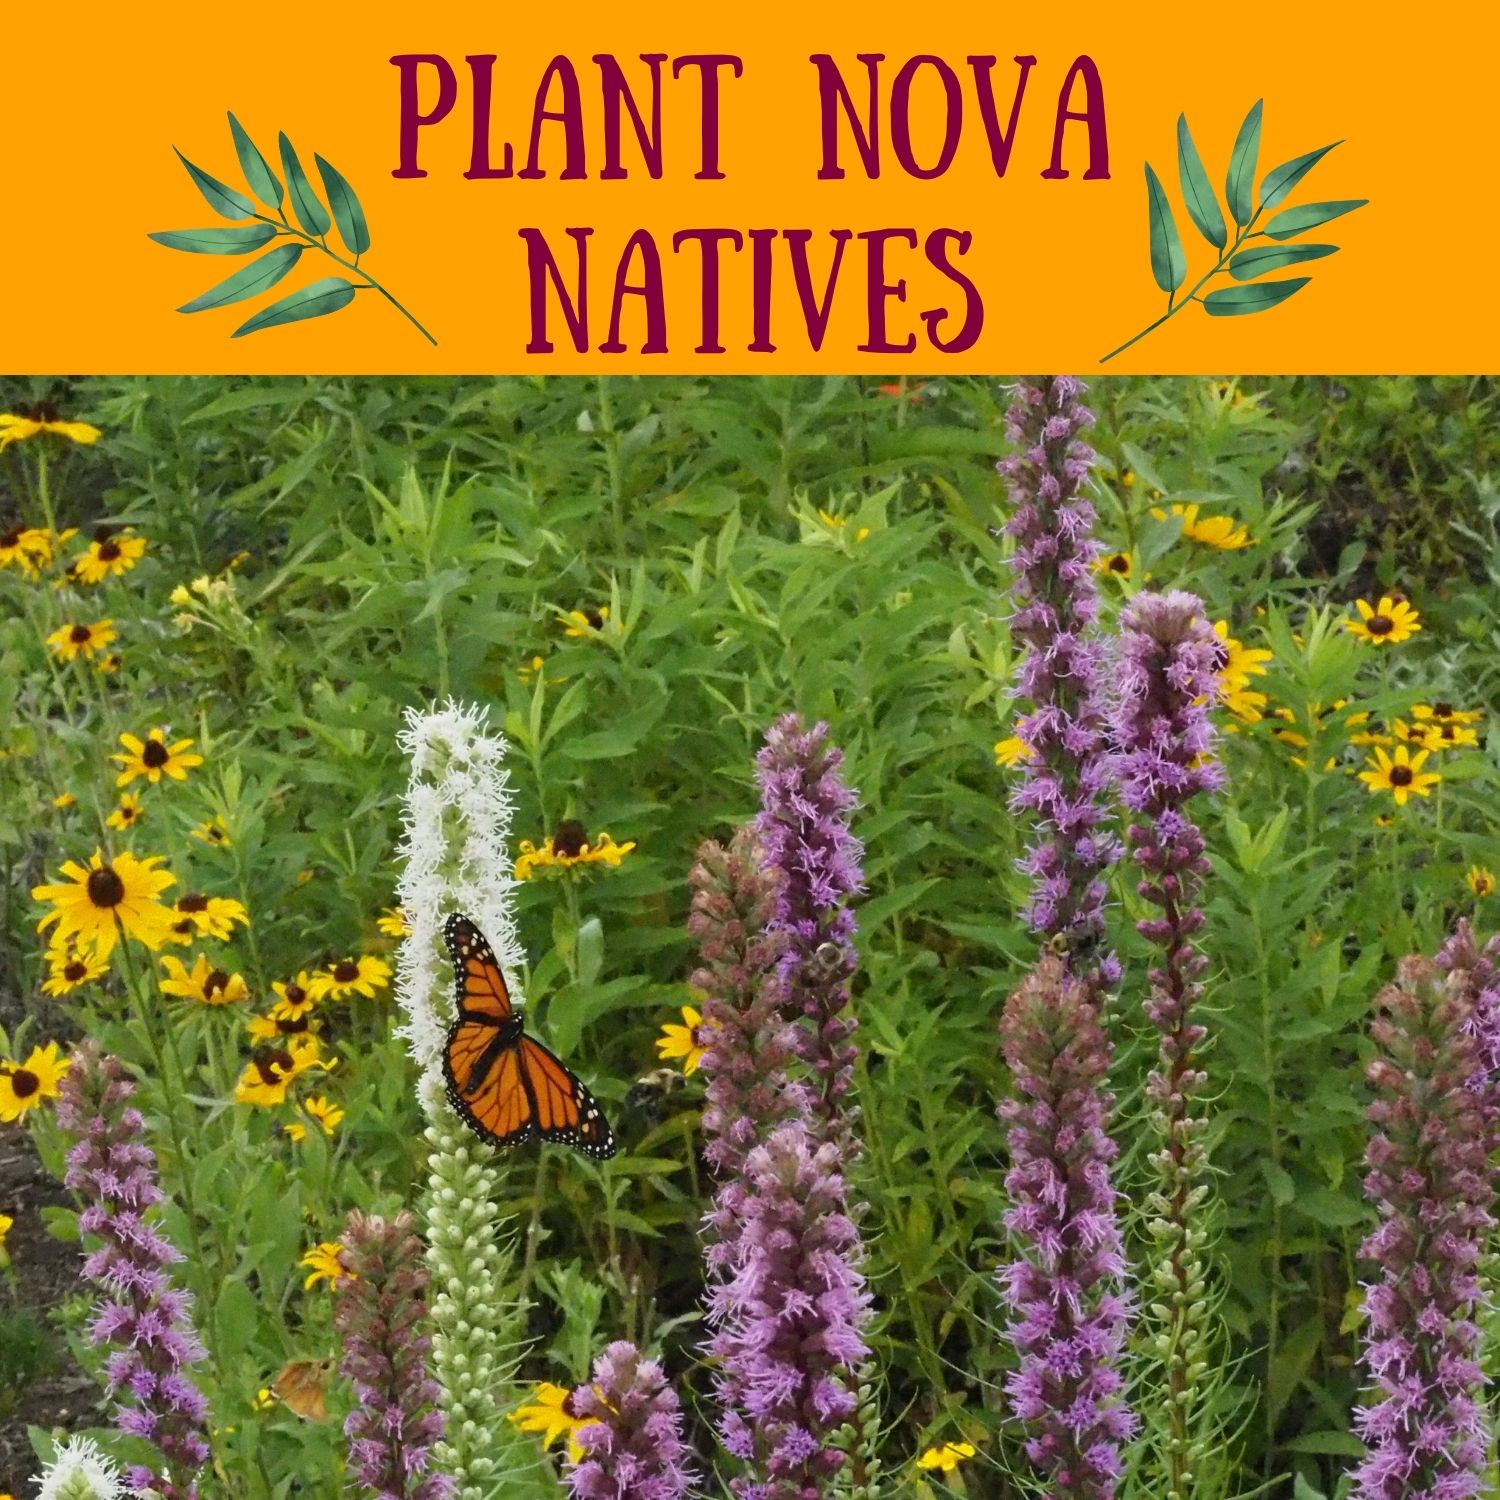 Pollinator Gardens for Earth Renewal